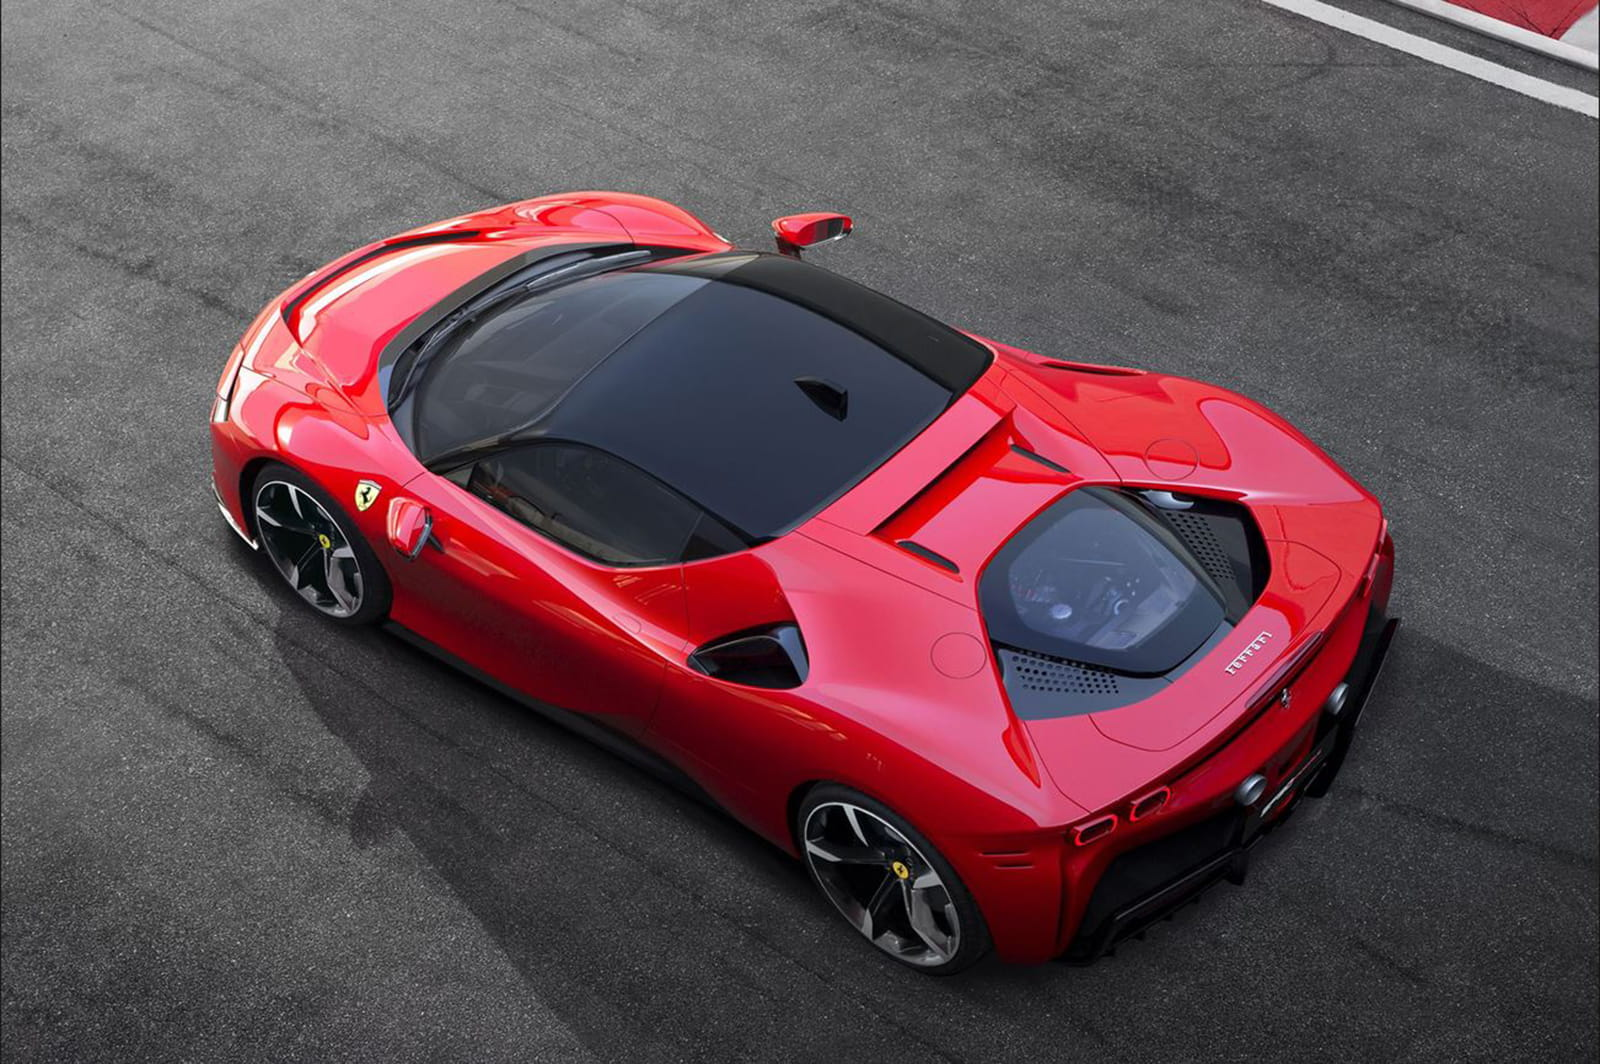 Ferrari SF90 Stradale on racetrack